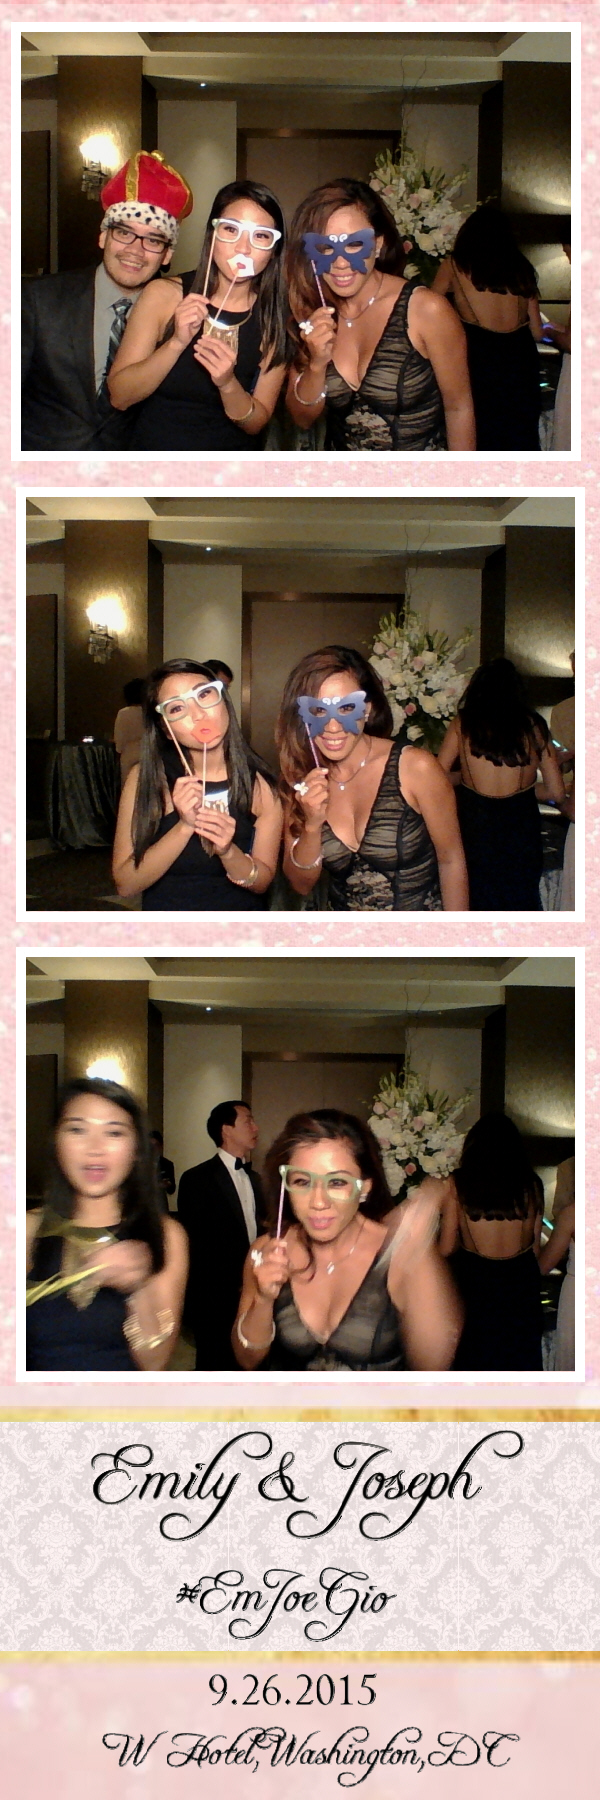 Guest House Events Photo Booth E&J (13).jpg